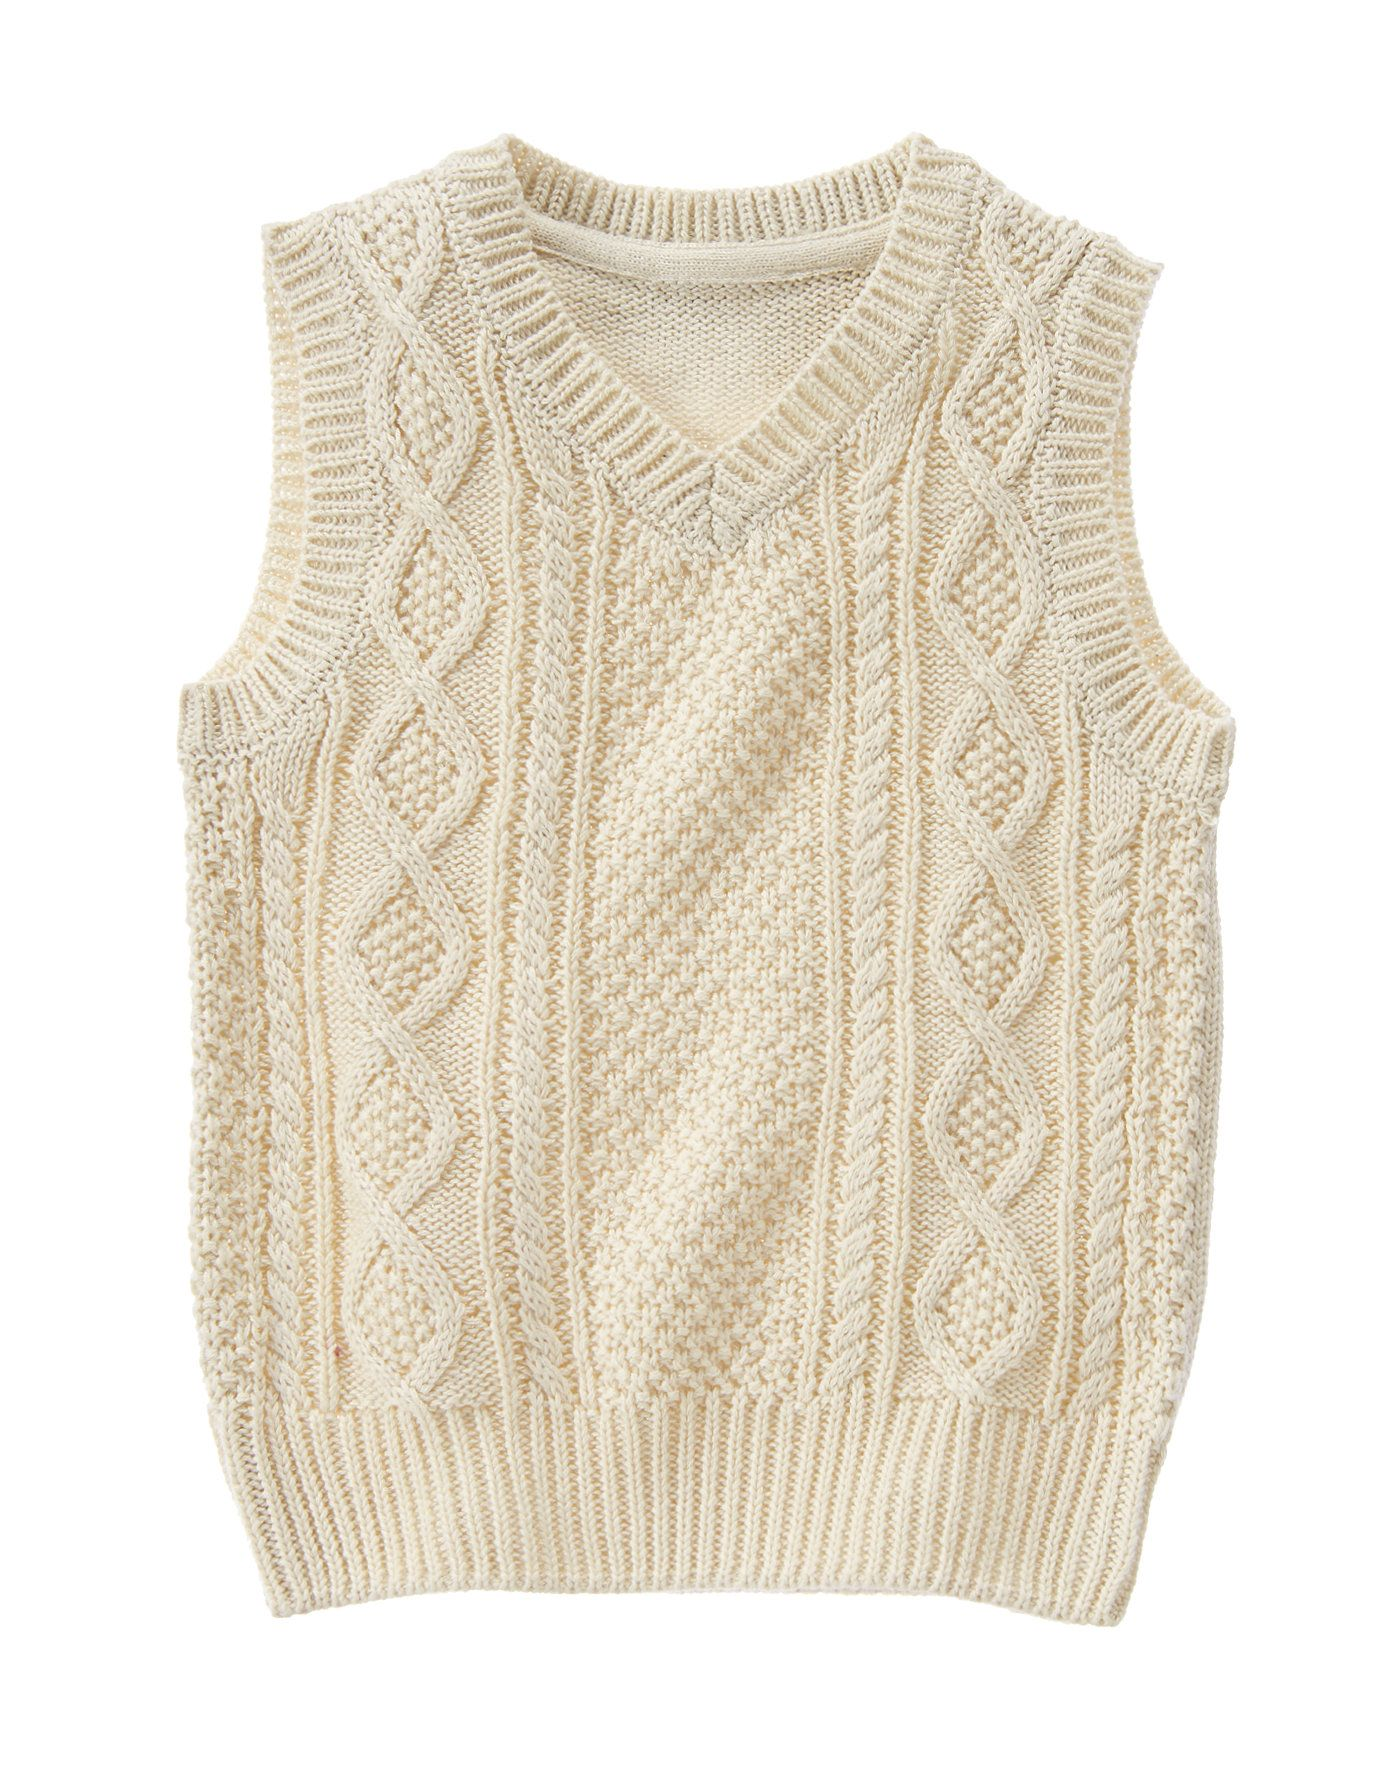 5862f52fbeaf Cable Knit Sweater Vest